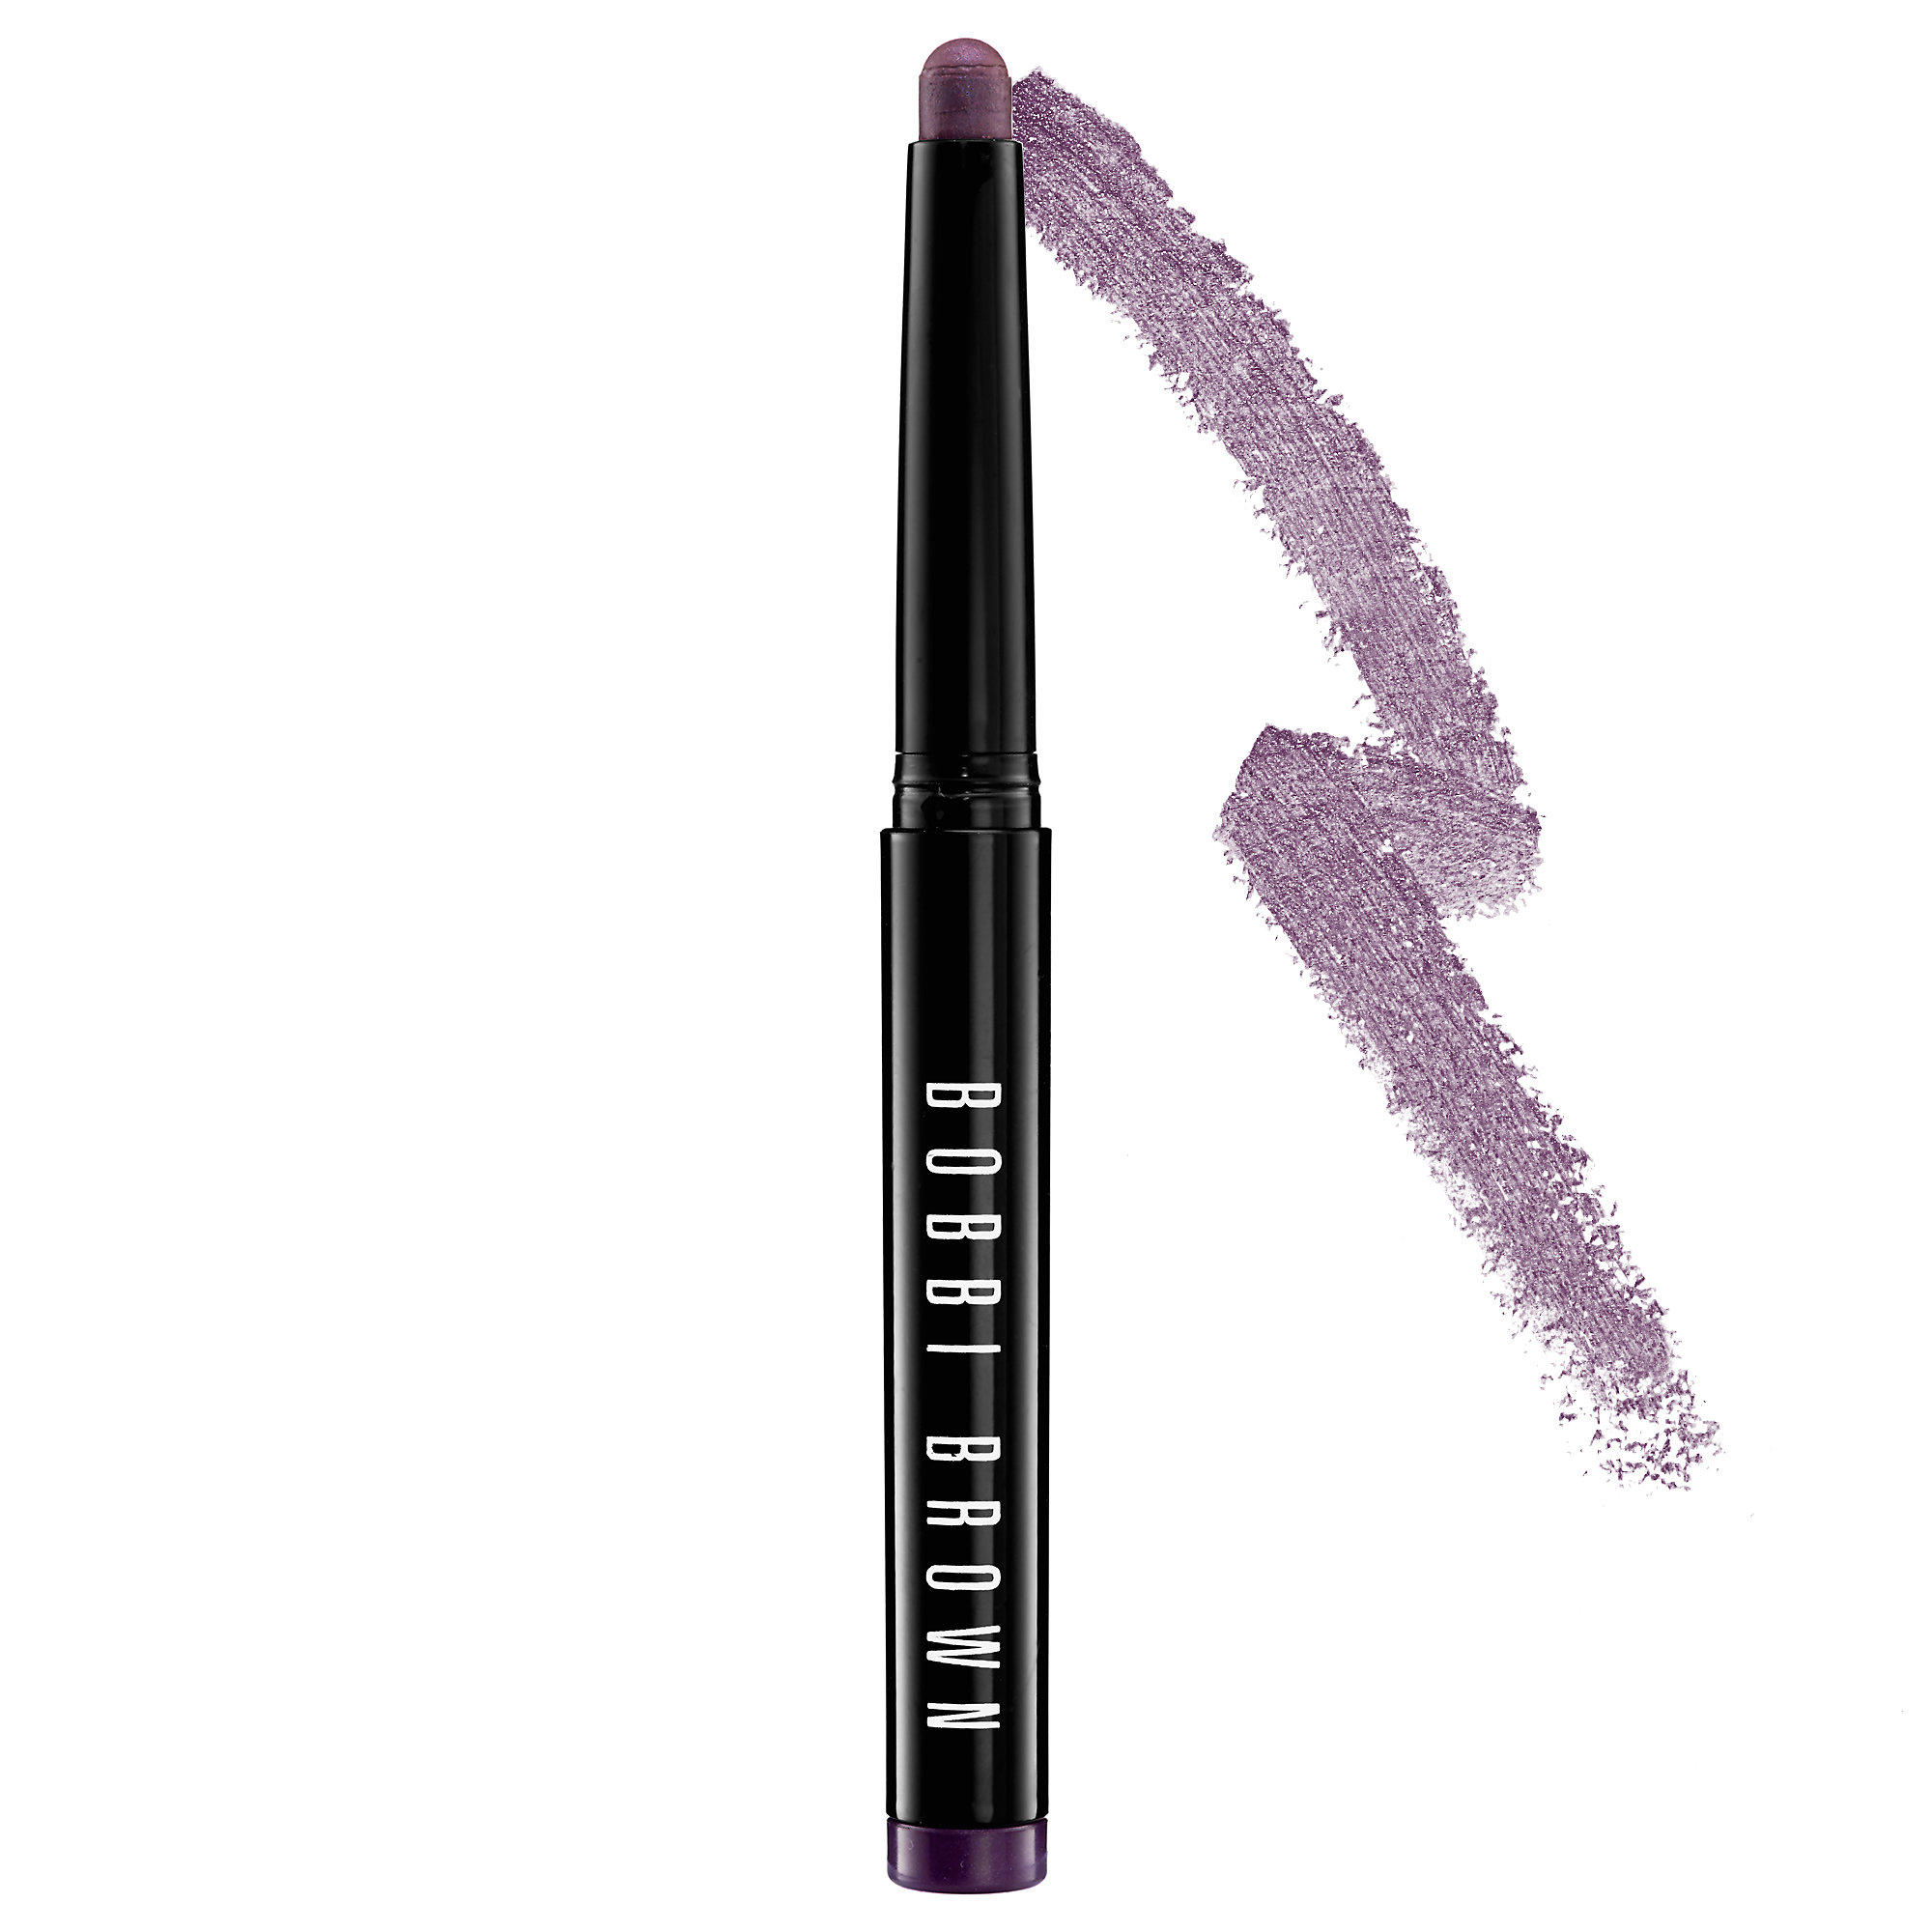 Bobbi Brown Longwear Cream Shadow Stick Violet Plum